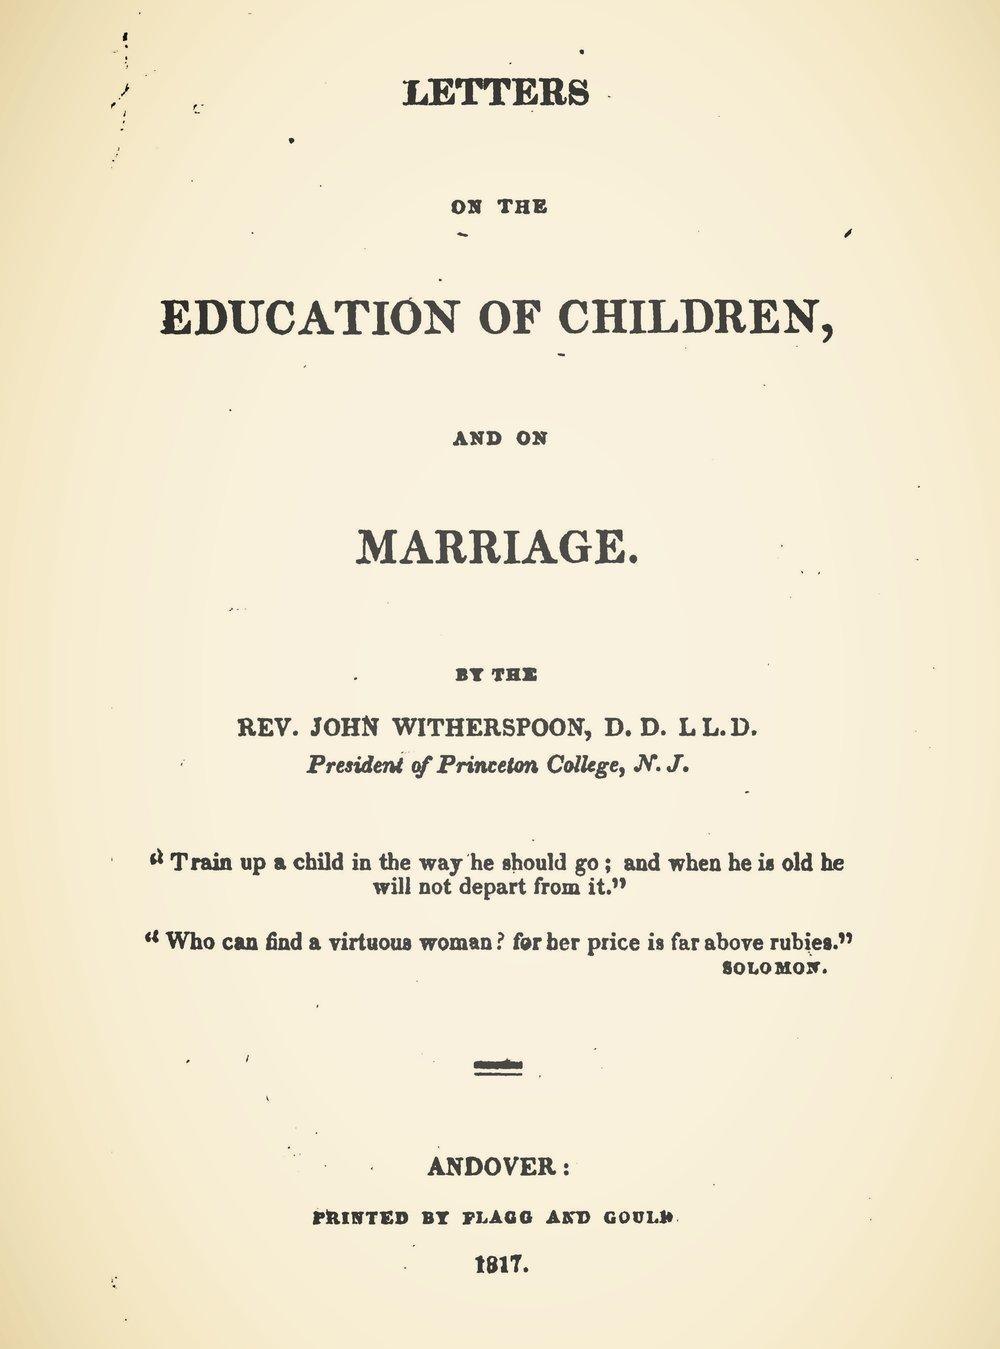 WItherspoon, John, Letters on the Education of Children, and on Marriage Title Page.jpg